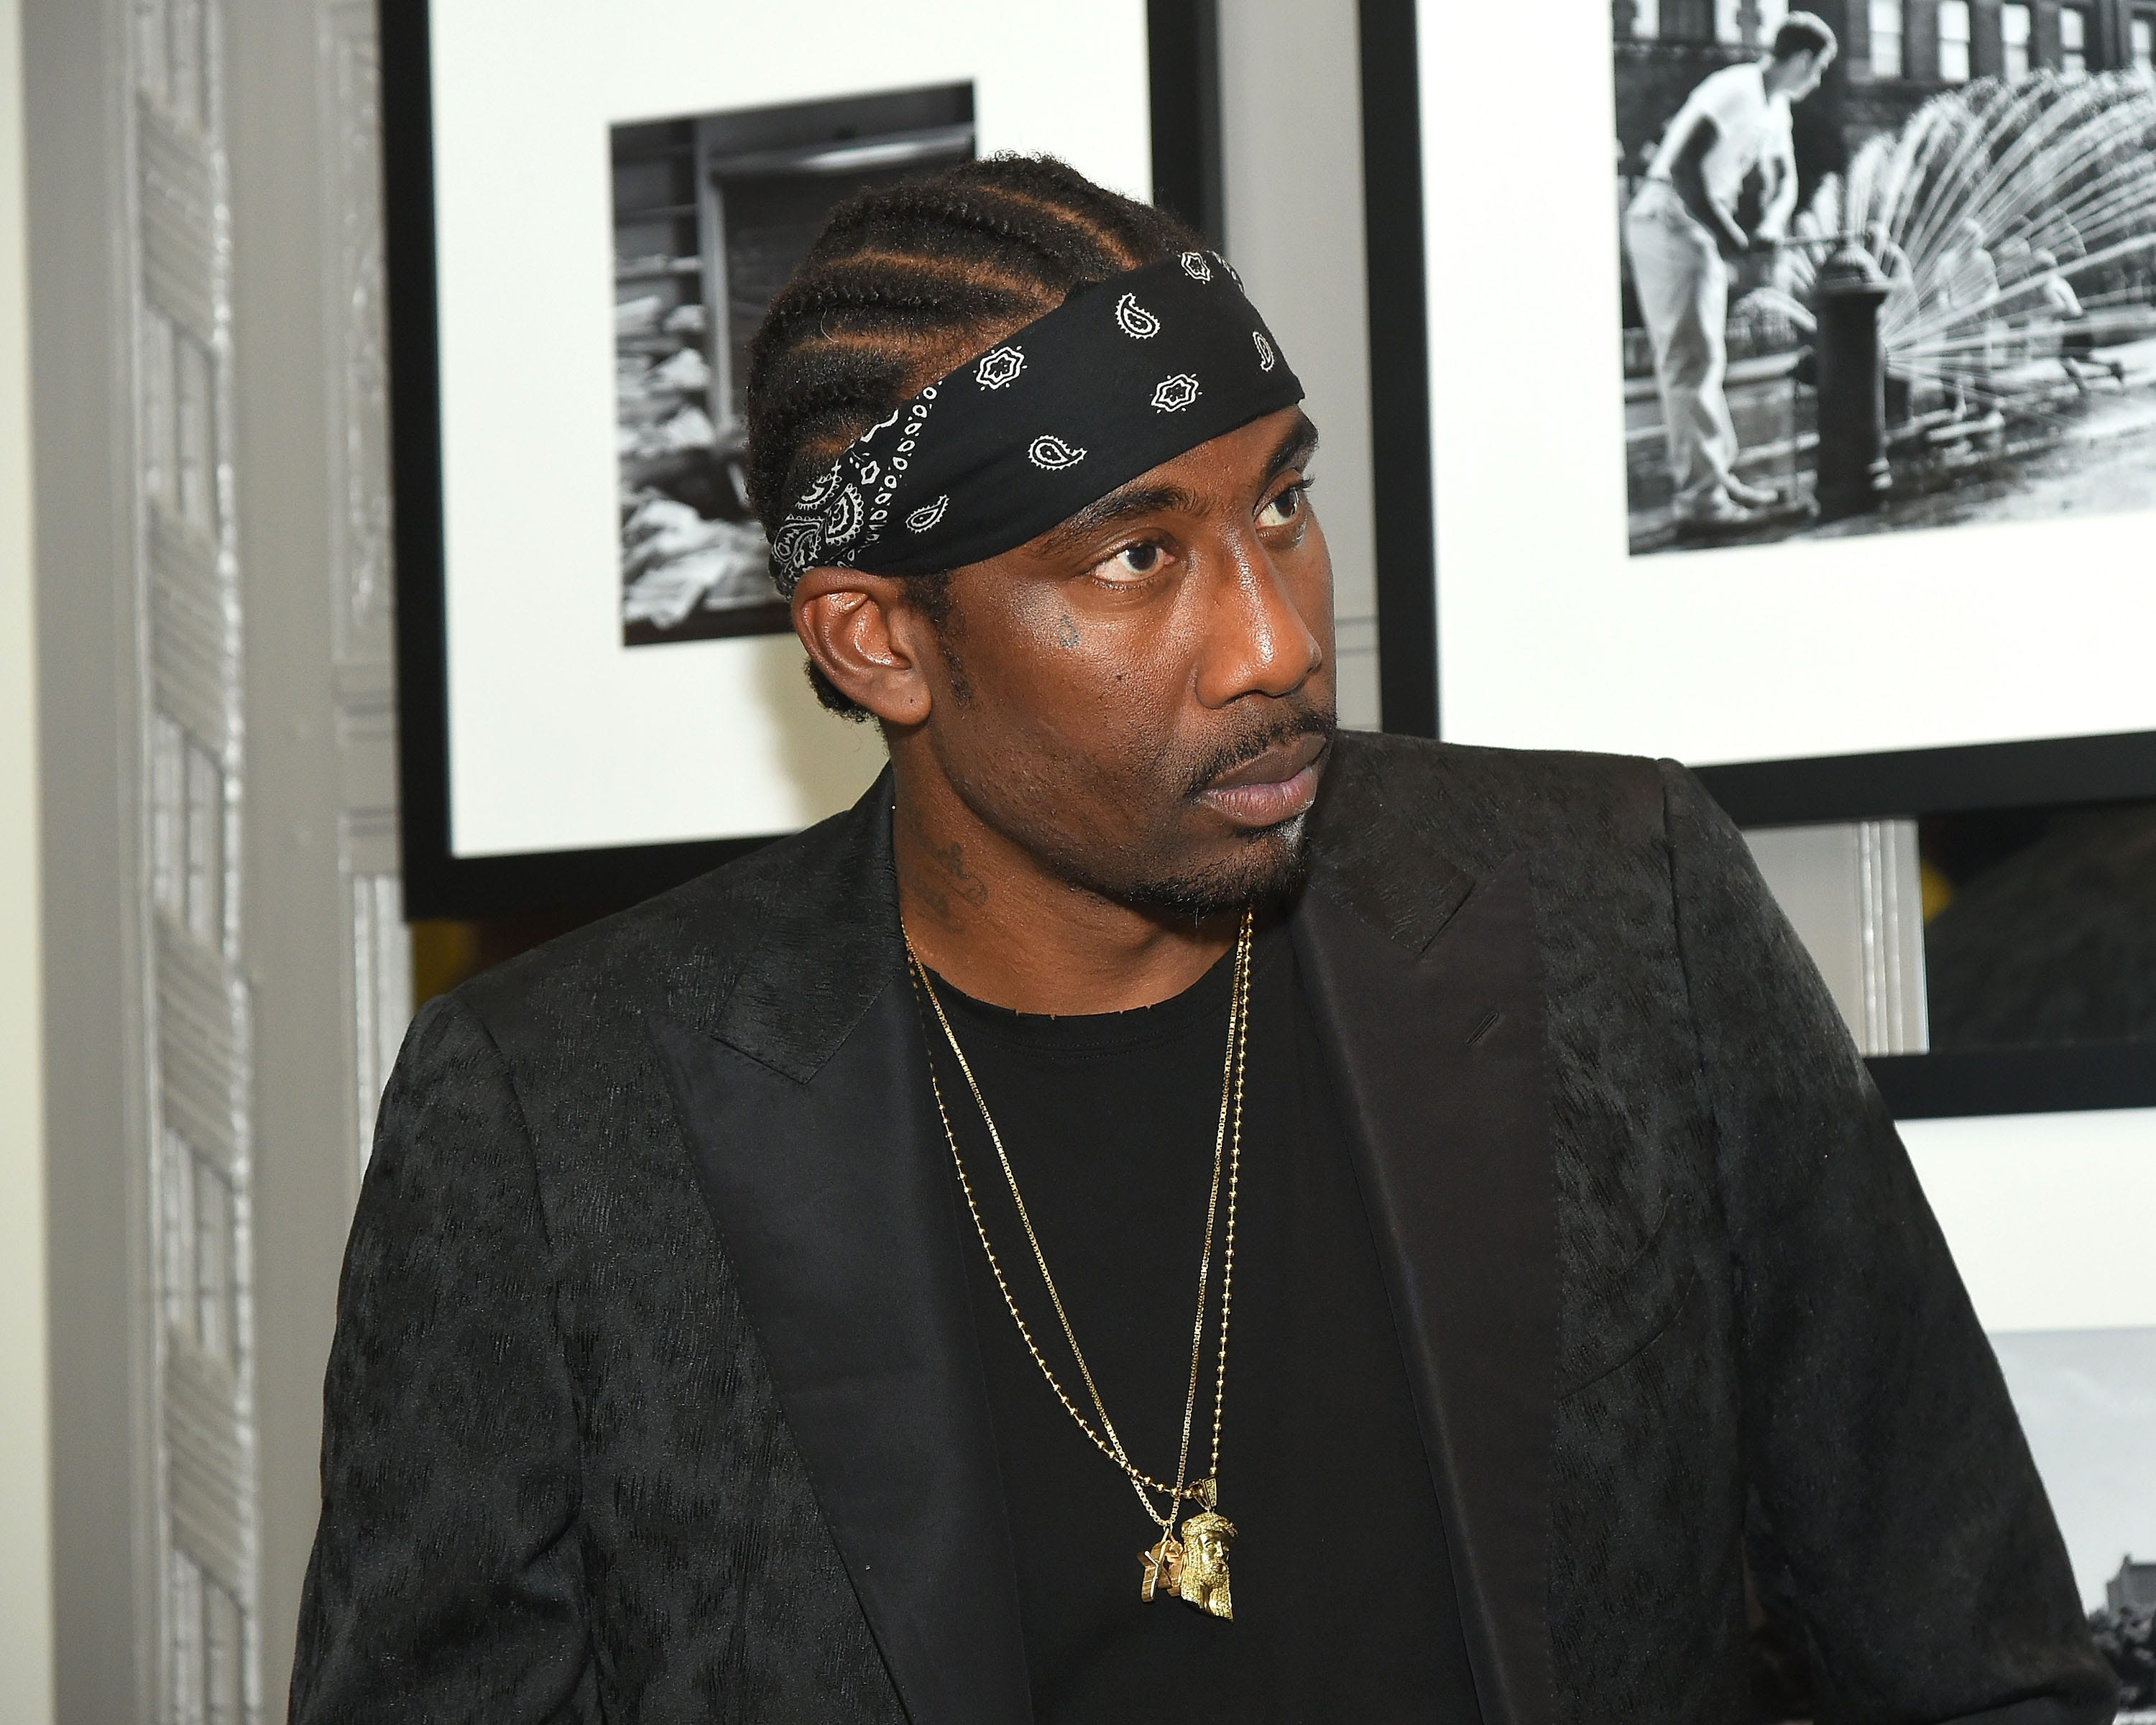 Amar'e Stoudemire on gay comments: 'There's always a truth within a joke'